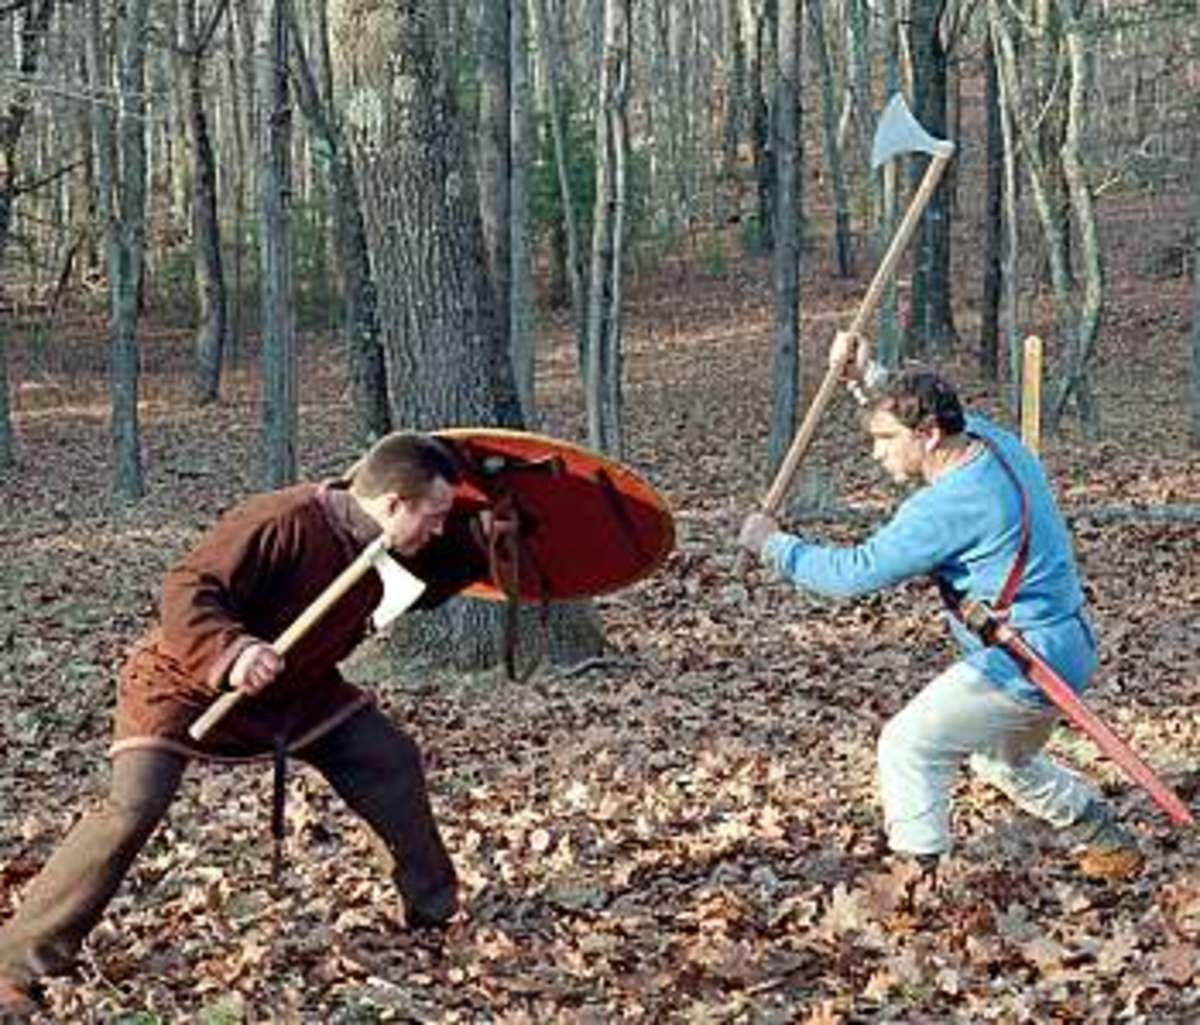 Axe combat. One man is armed with a Danish long-handled axe - these weapons could not be used easily in the shieldwall, and a man armed thus would need a comrade with shield and spear to watch his back